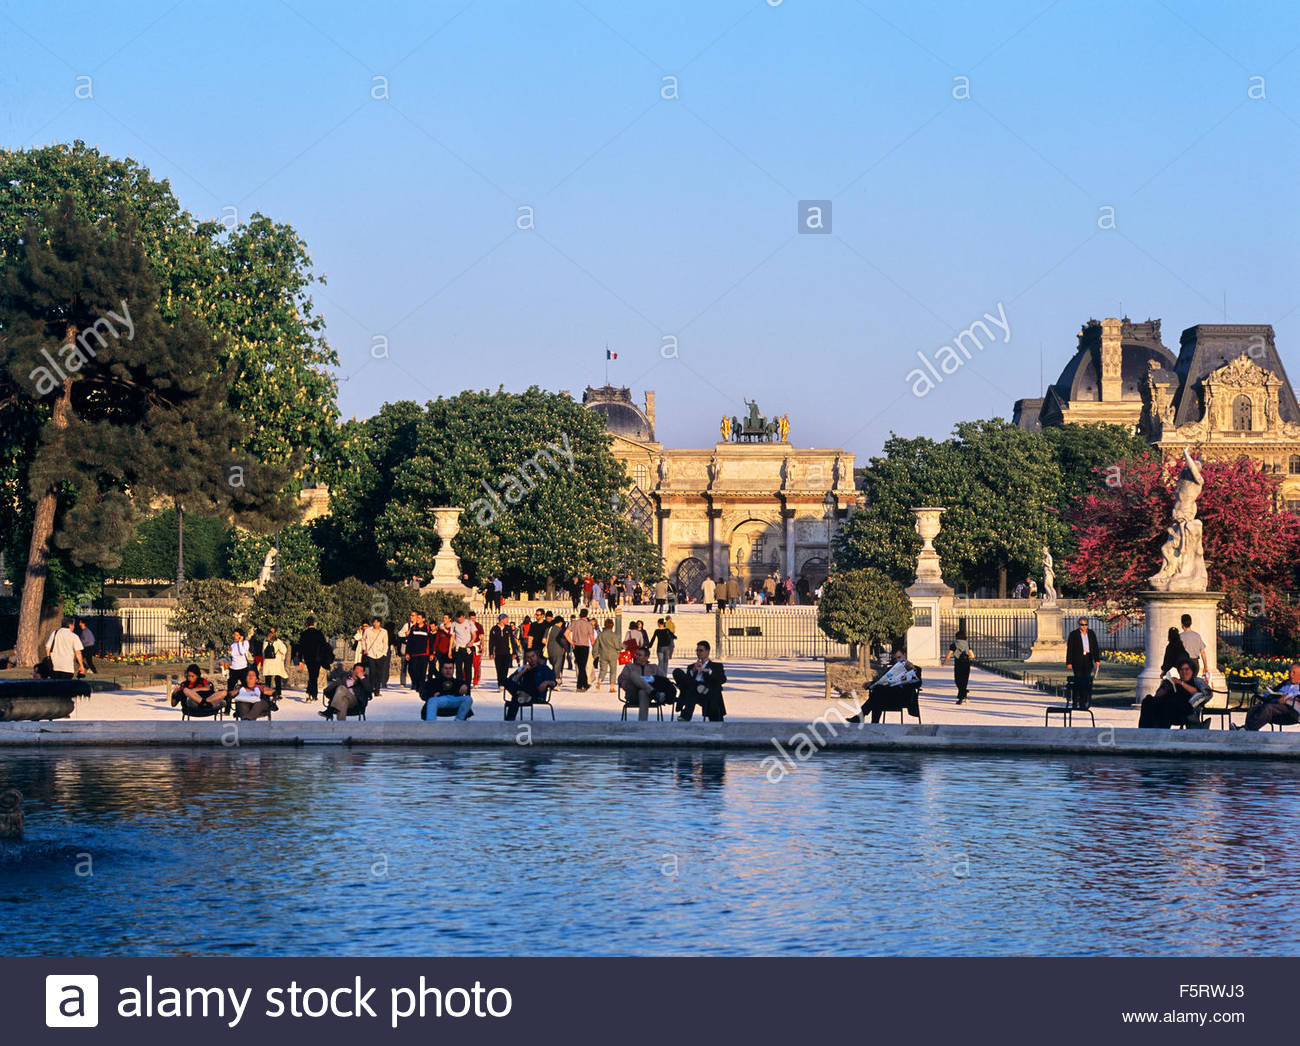 Parisians read, relax and stroll around the Grand Bassin Pond  Jardin des Tuileries, Paris, France. - Stock Image